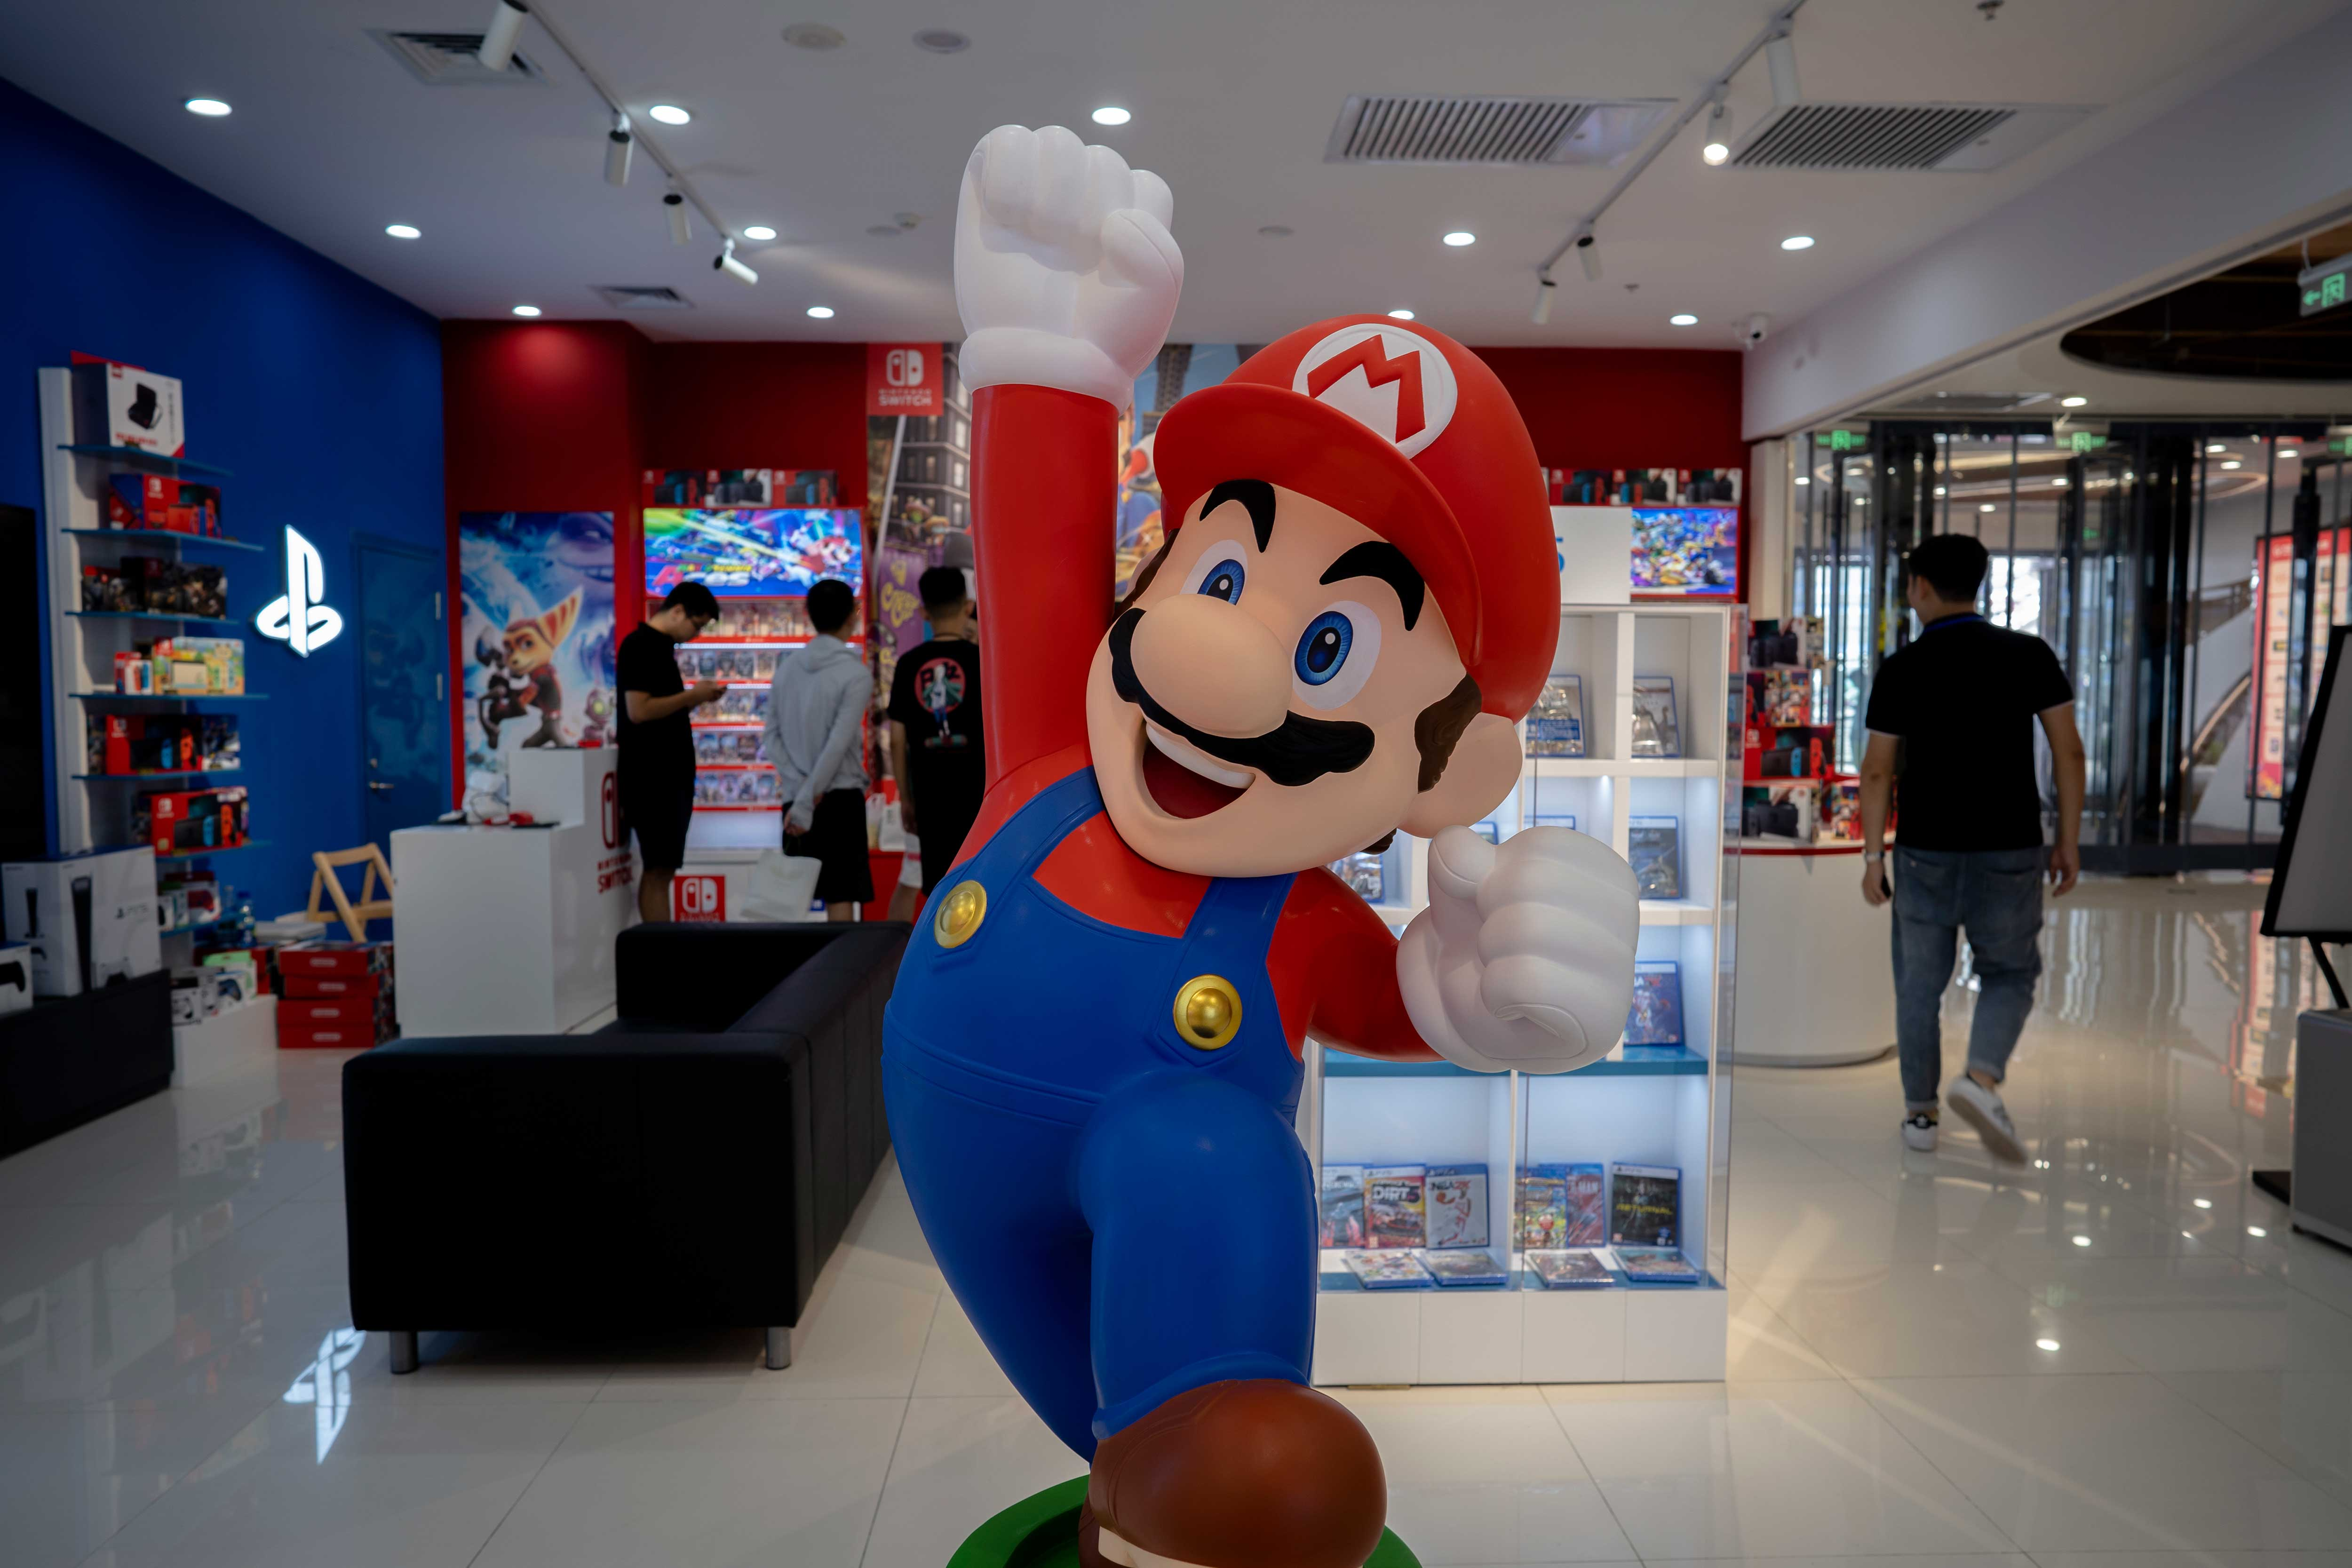 TIANJIN, CHINA - 2021/07/20: A cartoon figurine of Super Mario Bros. stands in front of a Nintendo Switch store in a shopping market.  By the end of June 2021, Nintendo's total global sales of Switch (including Switch and Switch Lite) have reached 87.43 million units, surpassing PS3 and becoming the seventh best selling host in Nintendo's history. (Photo by Zhang Peng/LightRocket via Getty Images)